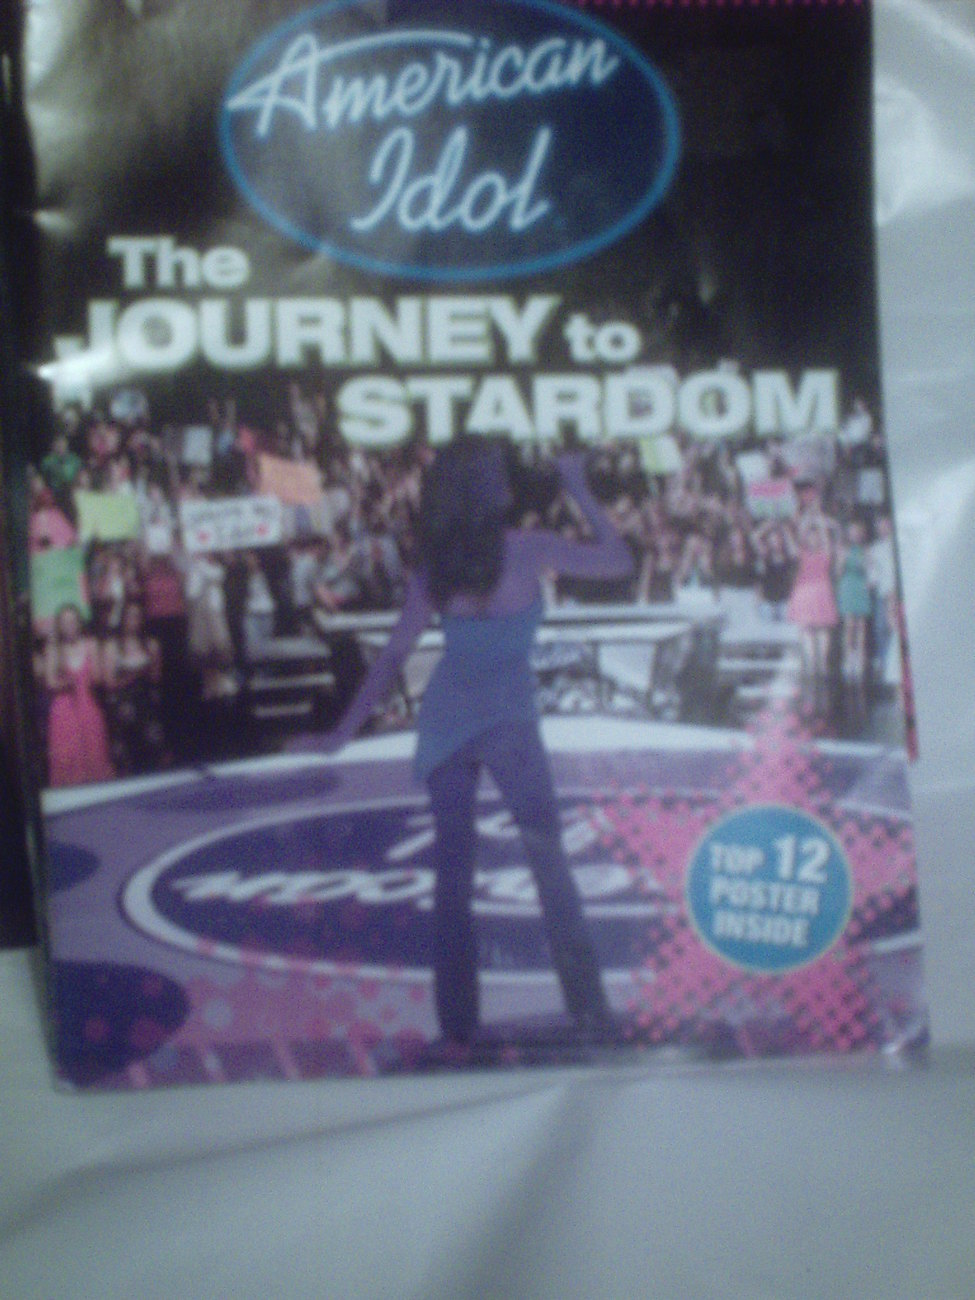 American Idol The Journey to Stardom